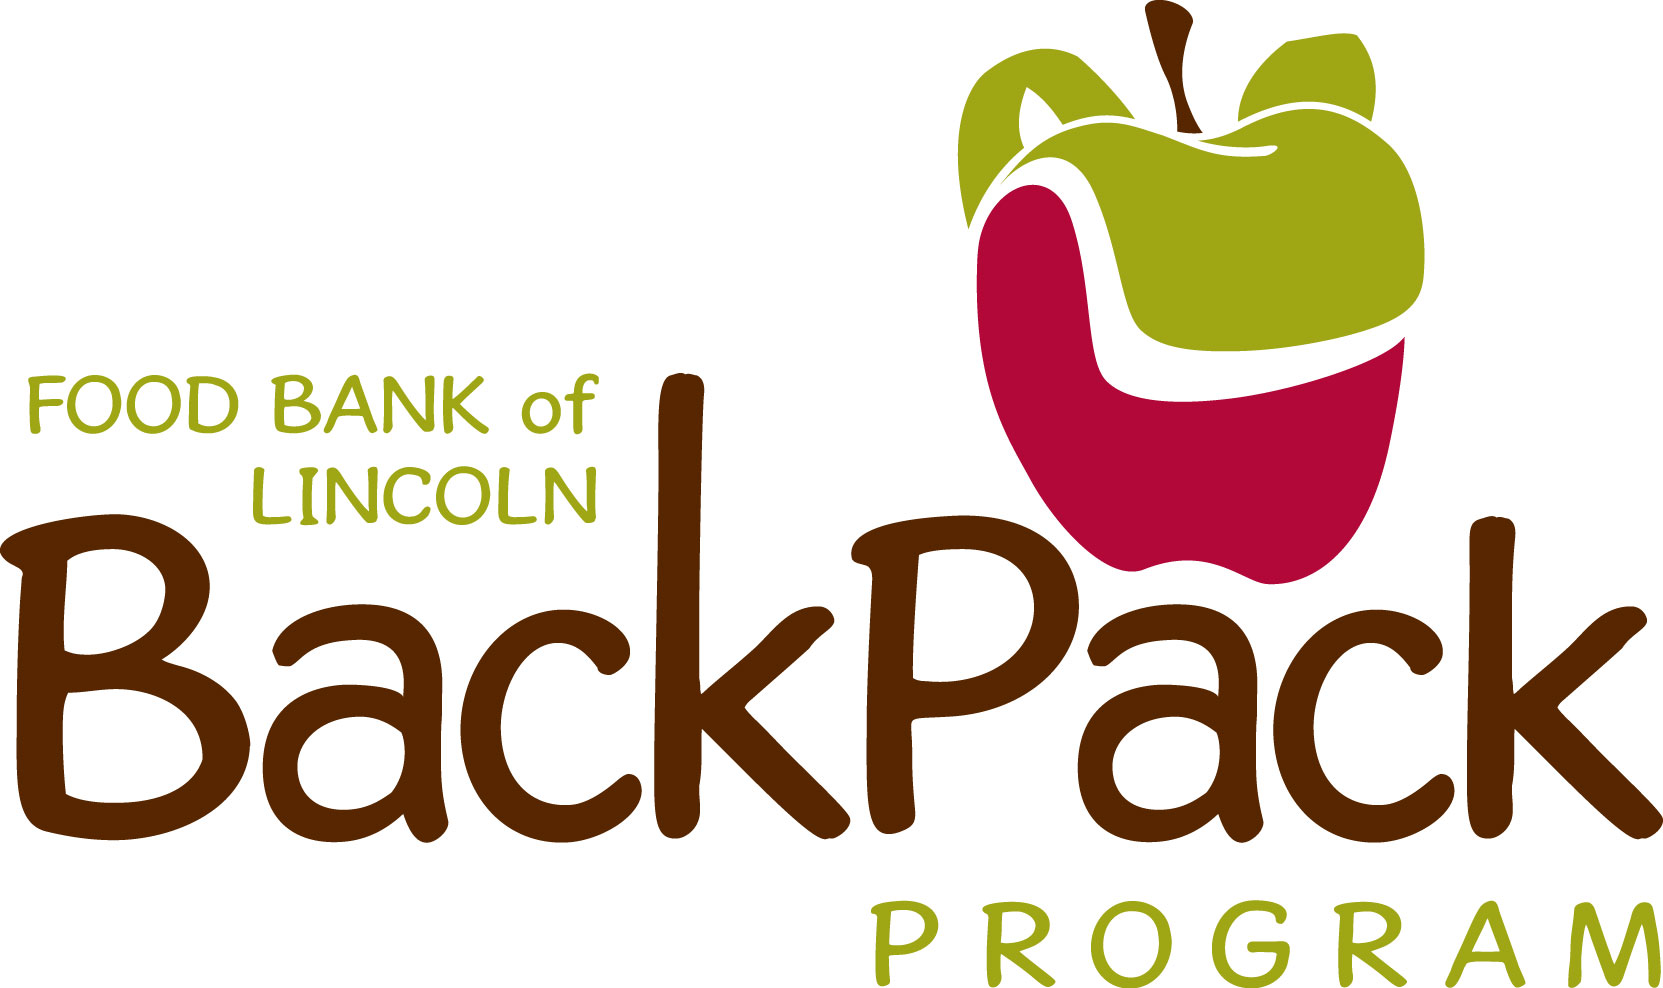 Food Bank Backpack Program